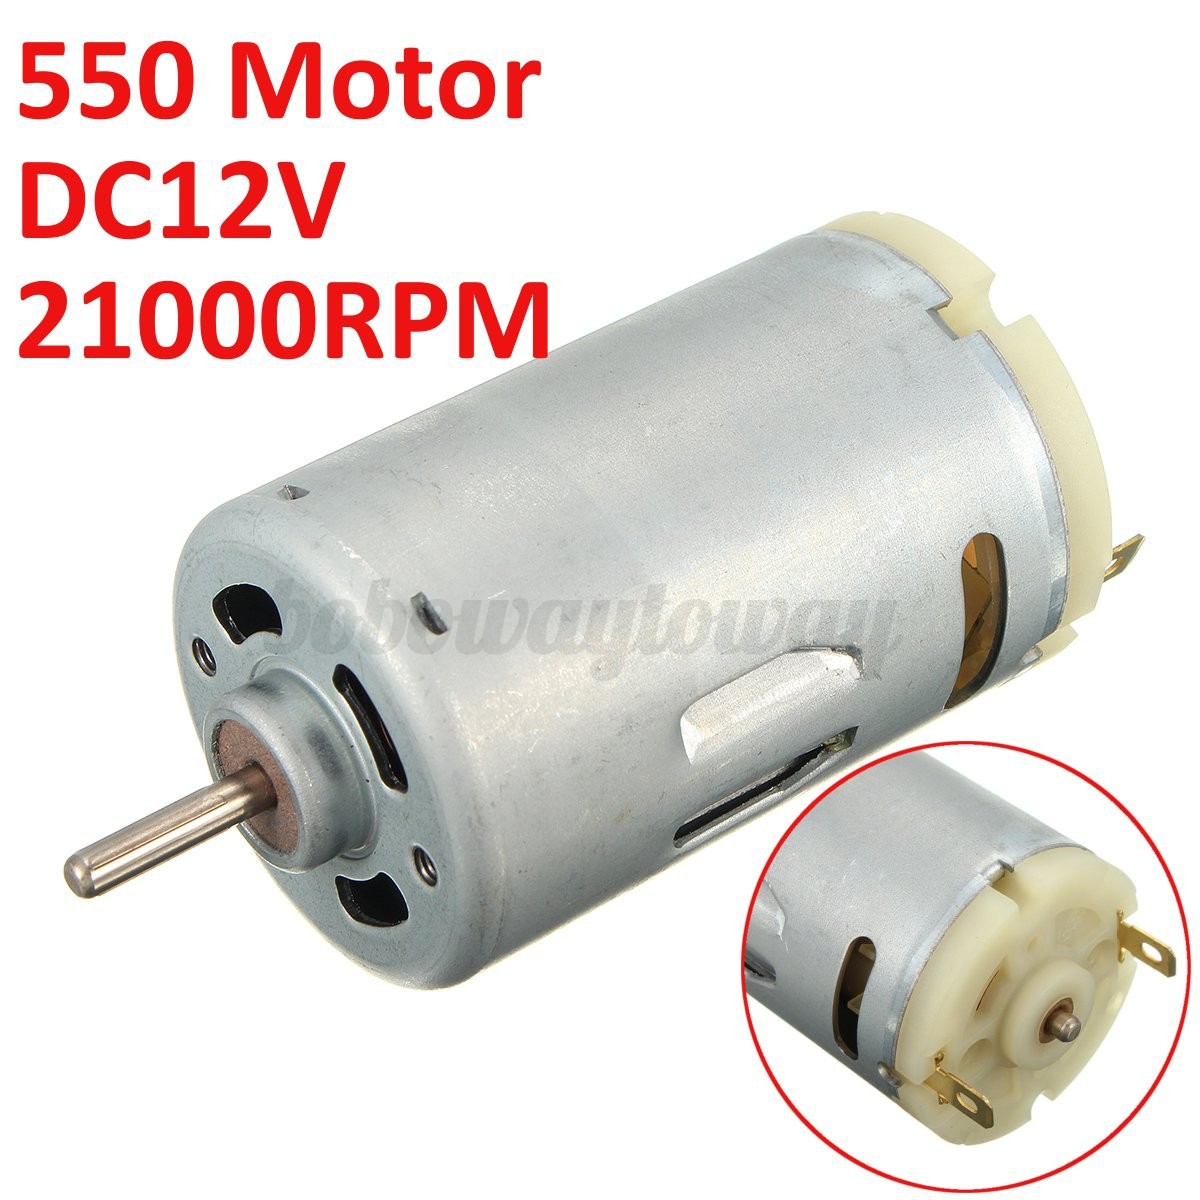 Dc 12v 550 motor 21000rpm high rotating speed motor large for High torque high speed dc motor